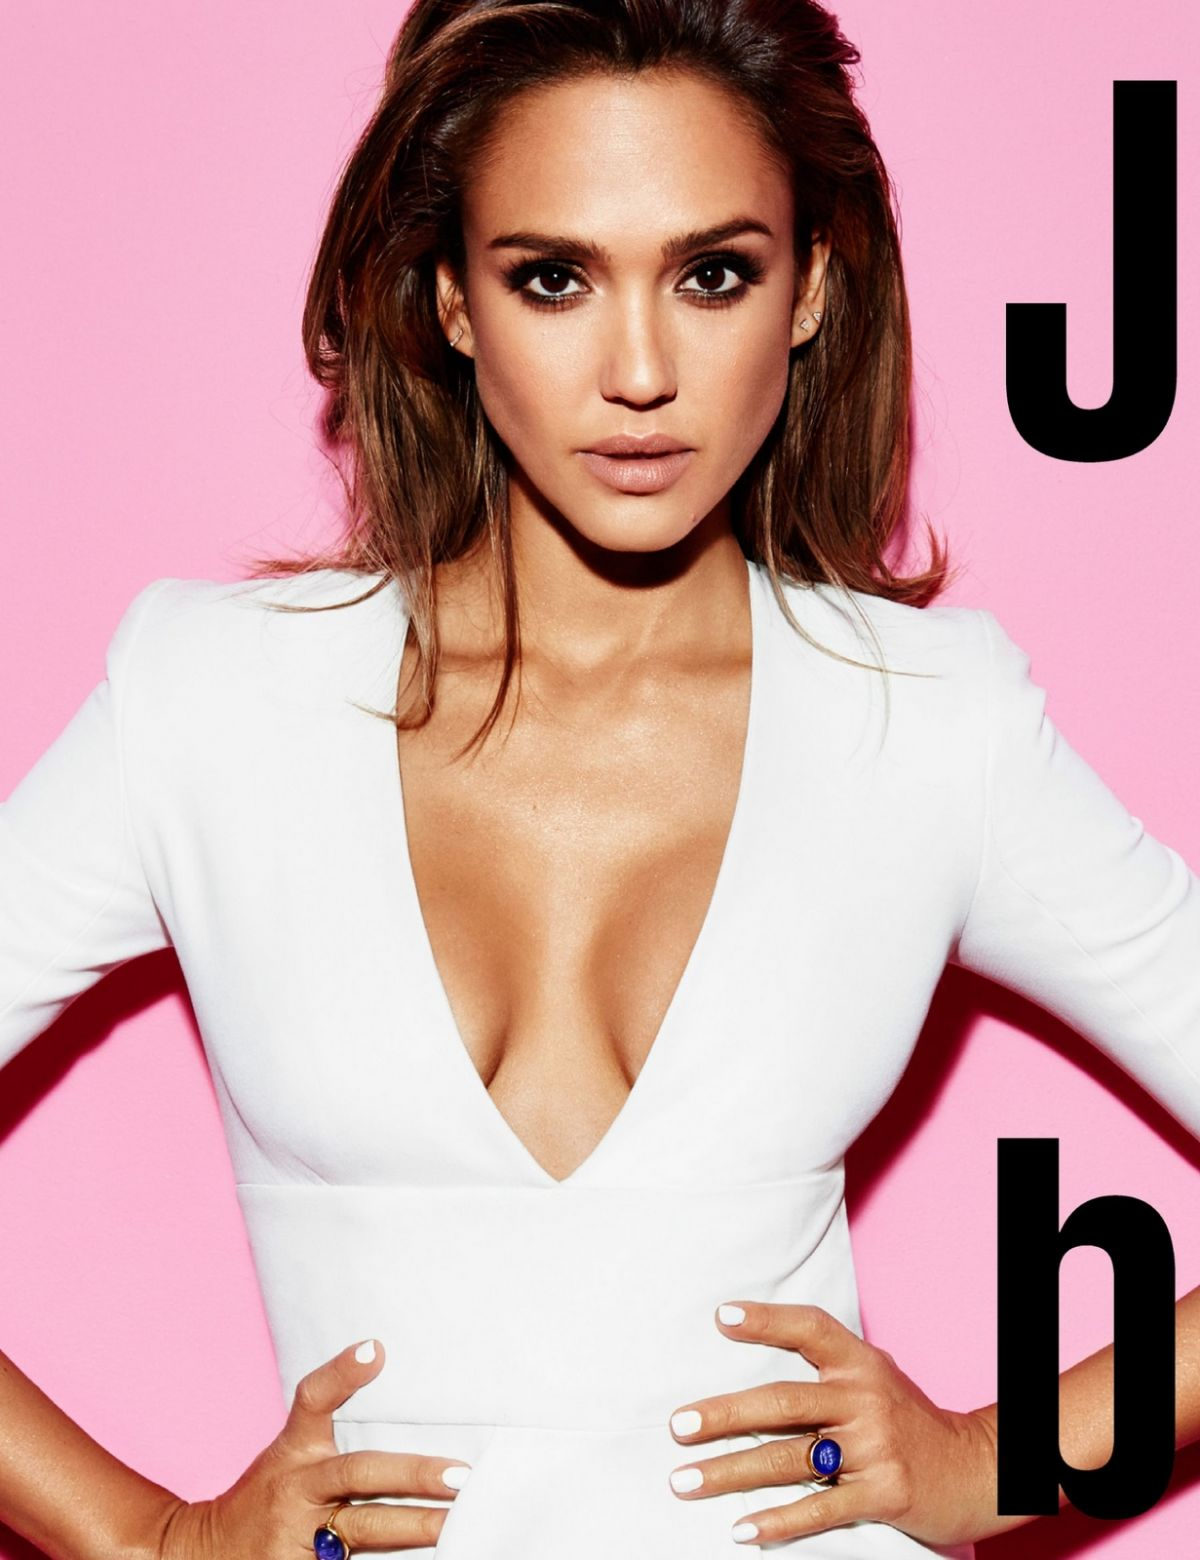 JESSICA ALBA in Cosmopolitan Magazine, UK April 2016 Issue